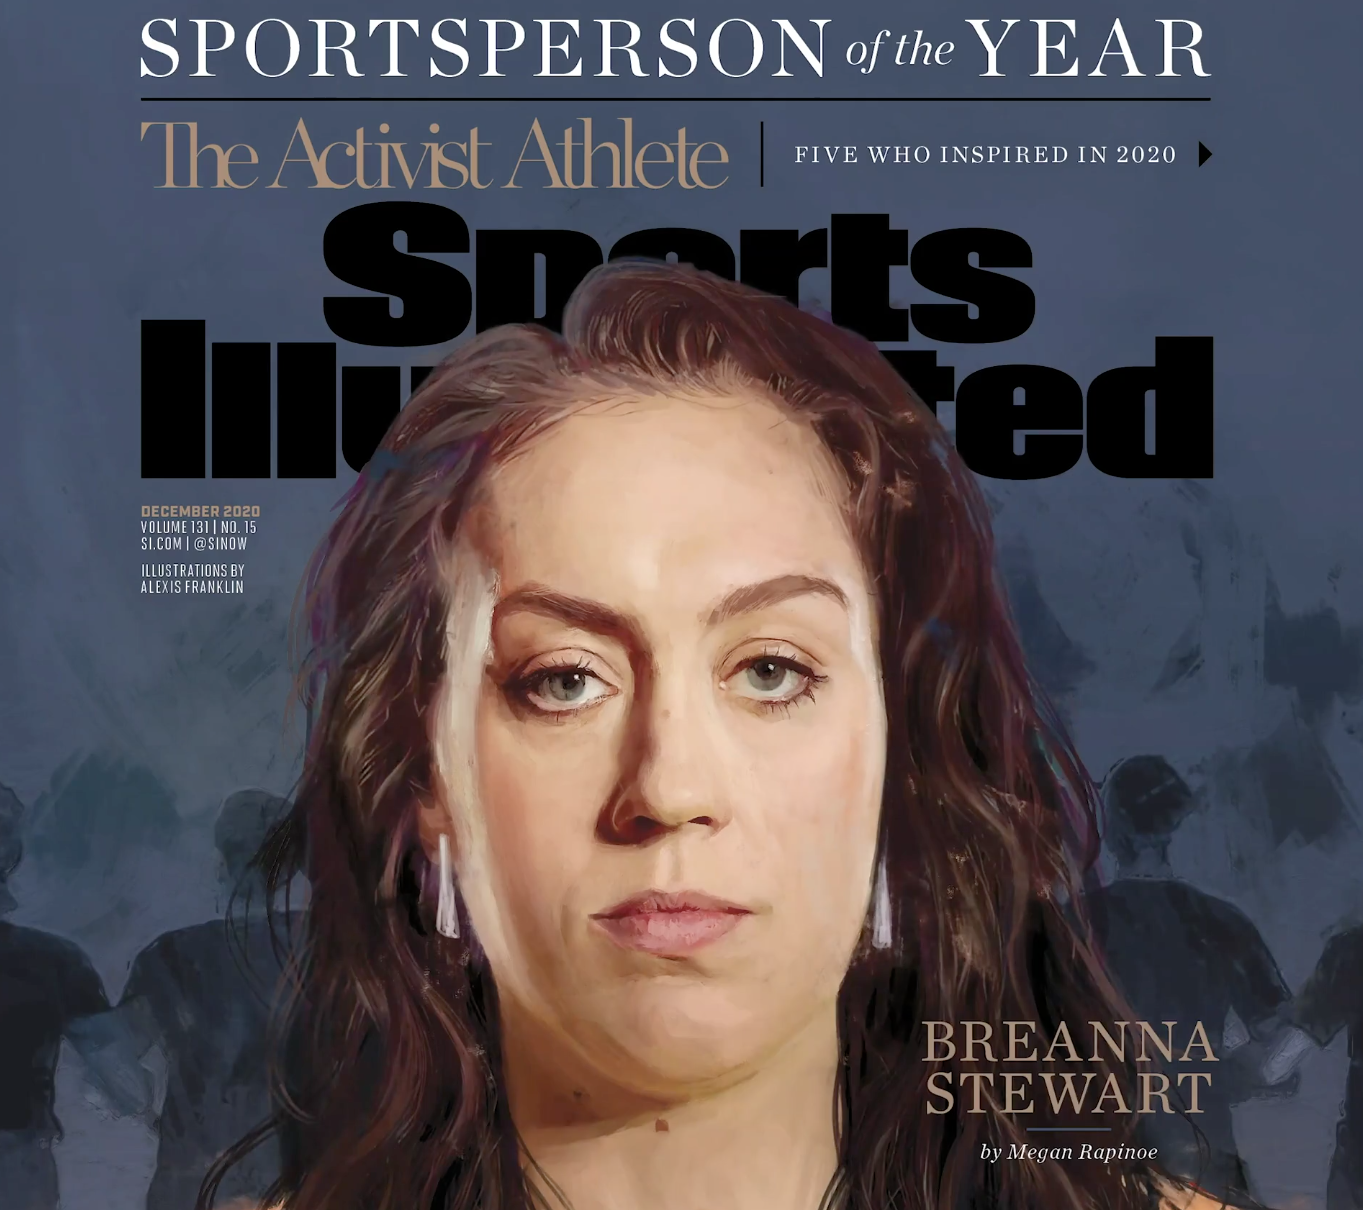 A computer painting of Breanna Stewart of the Seattle Storm